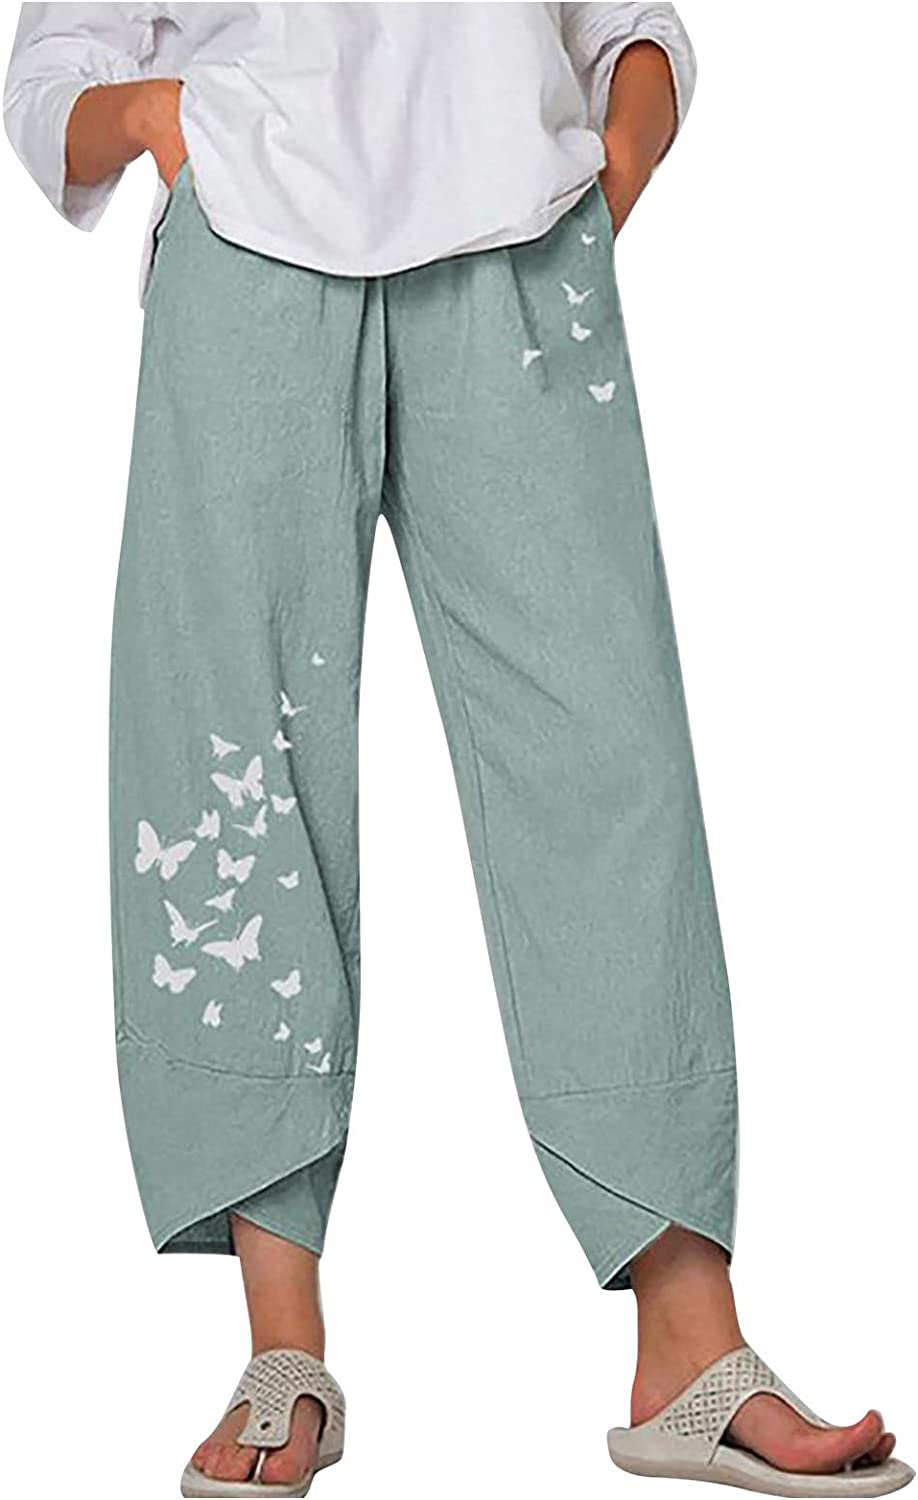 Women's Casual Fashion Loose Cotton and Linen Butterfly Print Wide-Leg Pants Summer Casual Pants